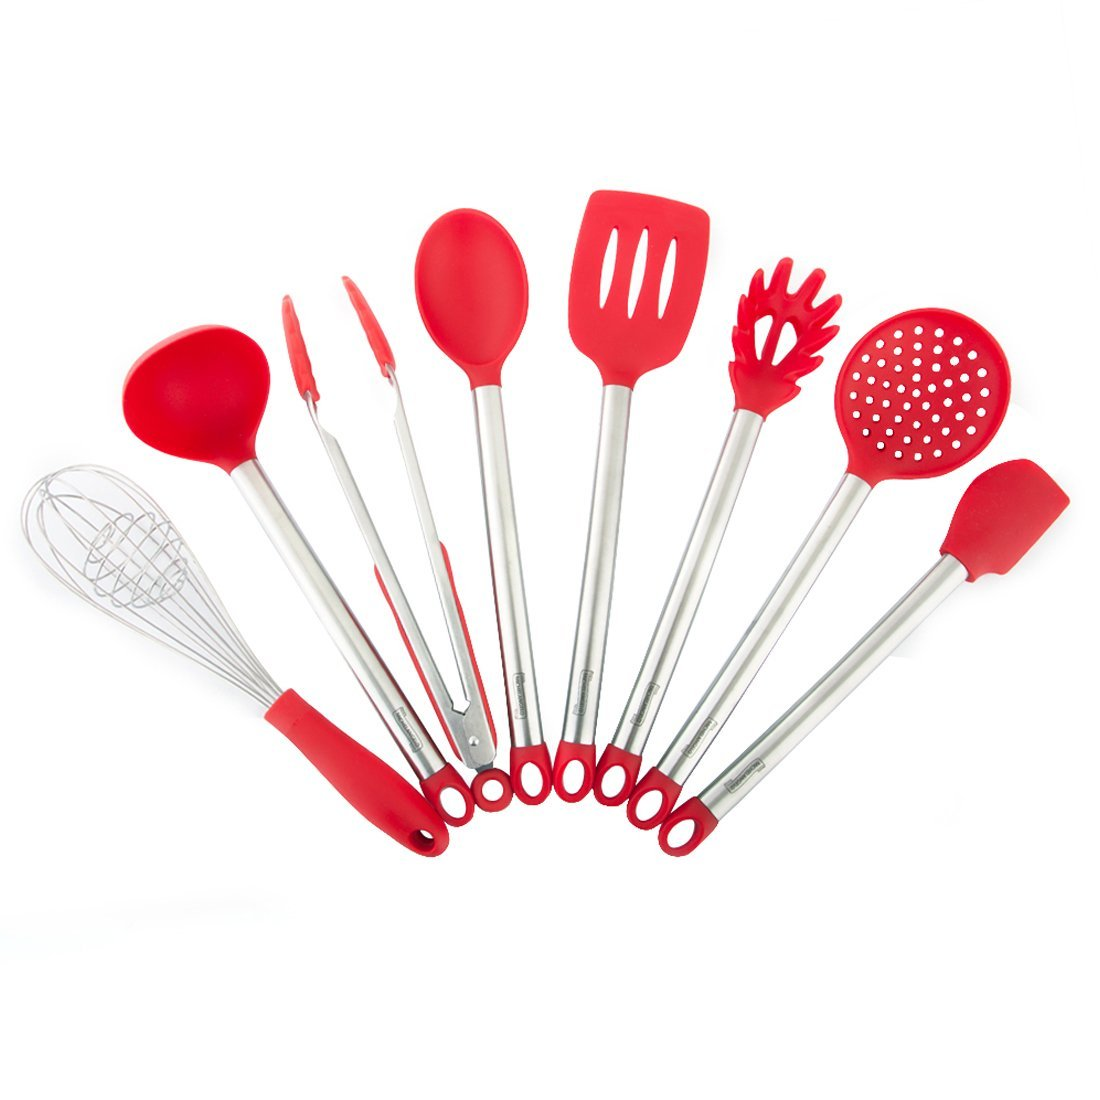 Michelangelo 8-Piece Kitchen Utensils Set - Silicone Heads and Stainless Steel Handles, Heat Resistant - Spoon, Spatula, Ladle, Food Tong, Pasta Server, Skimmer, Slotted Turner and Wisk, Red Color